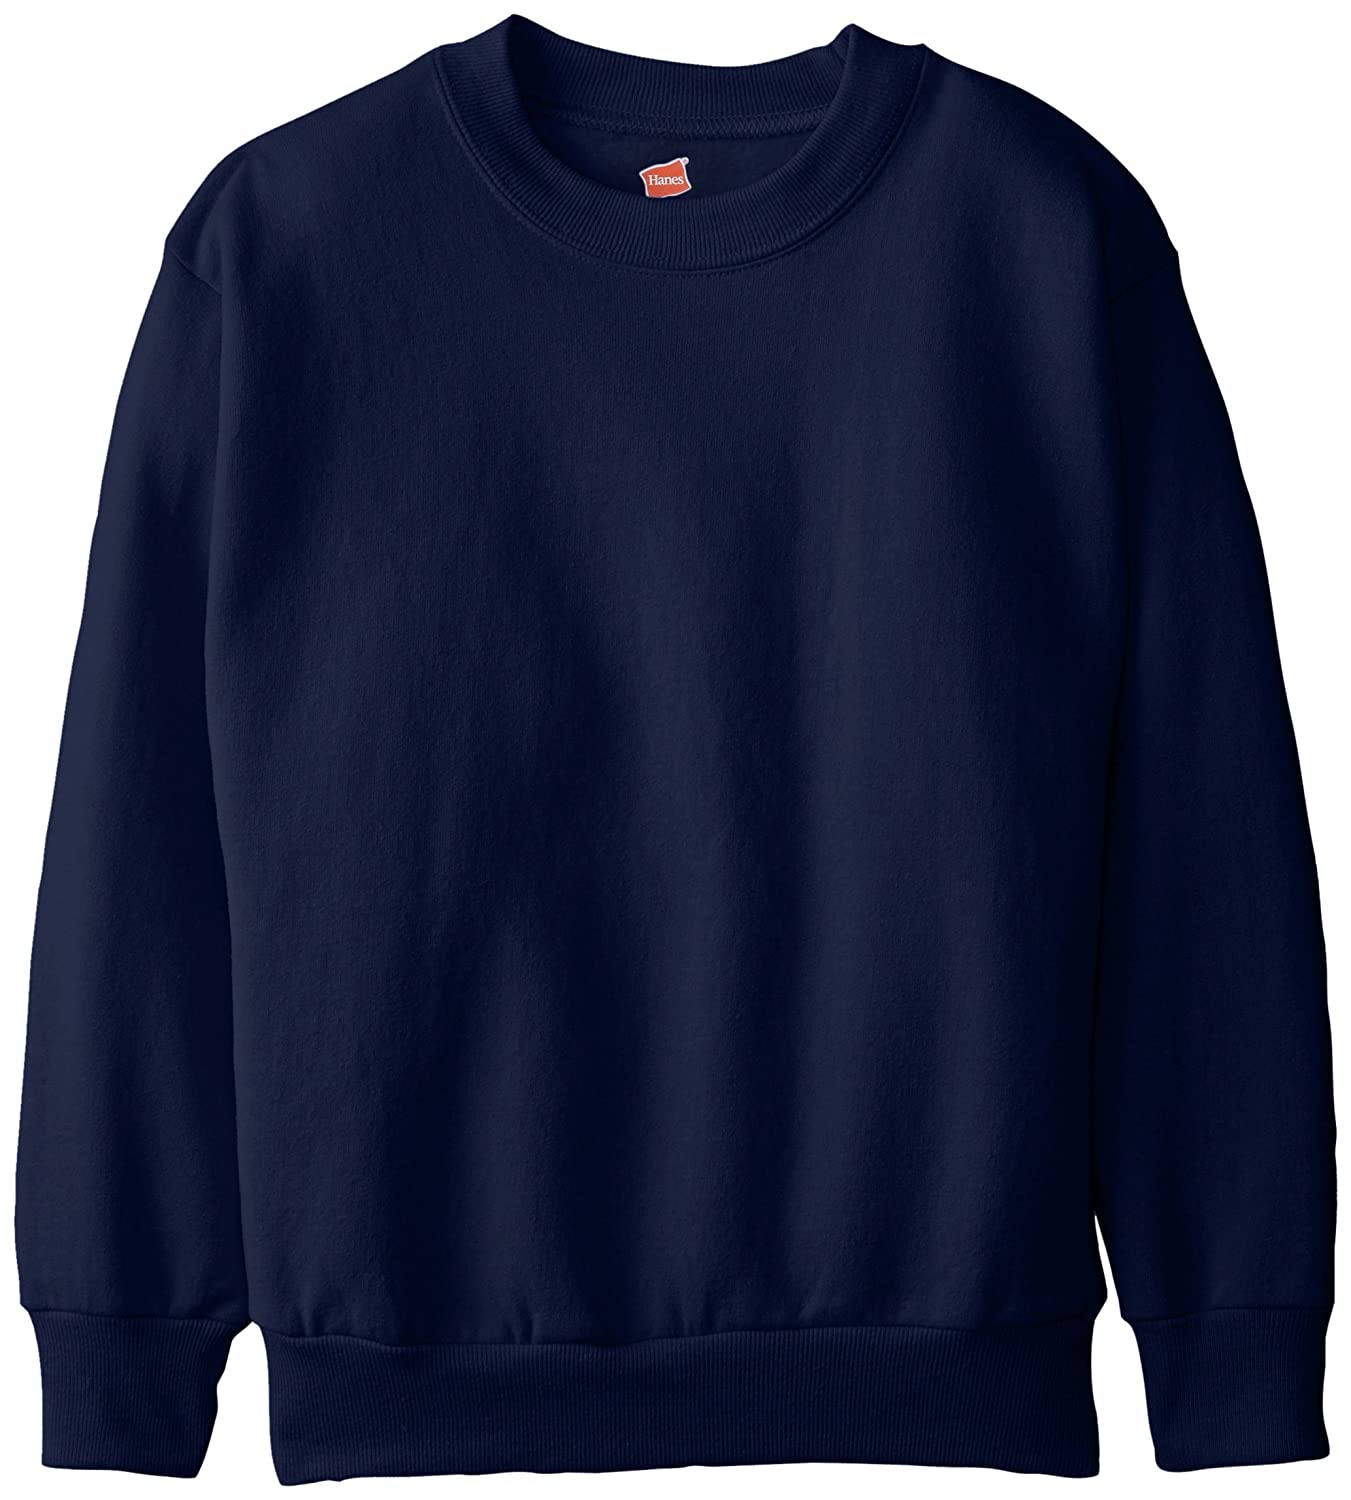 Hanes Big Boys' Eco Smart Fleece Crew Hanes - Boys 8-20 OP360